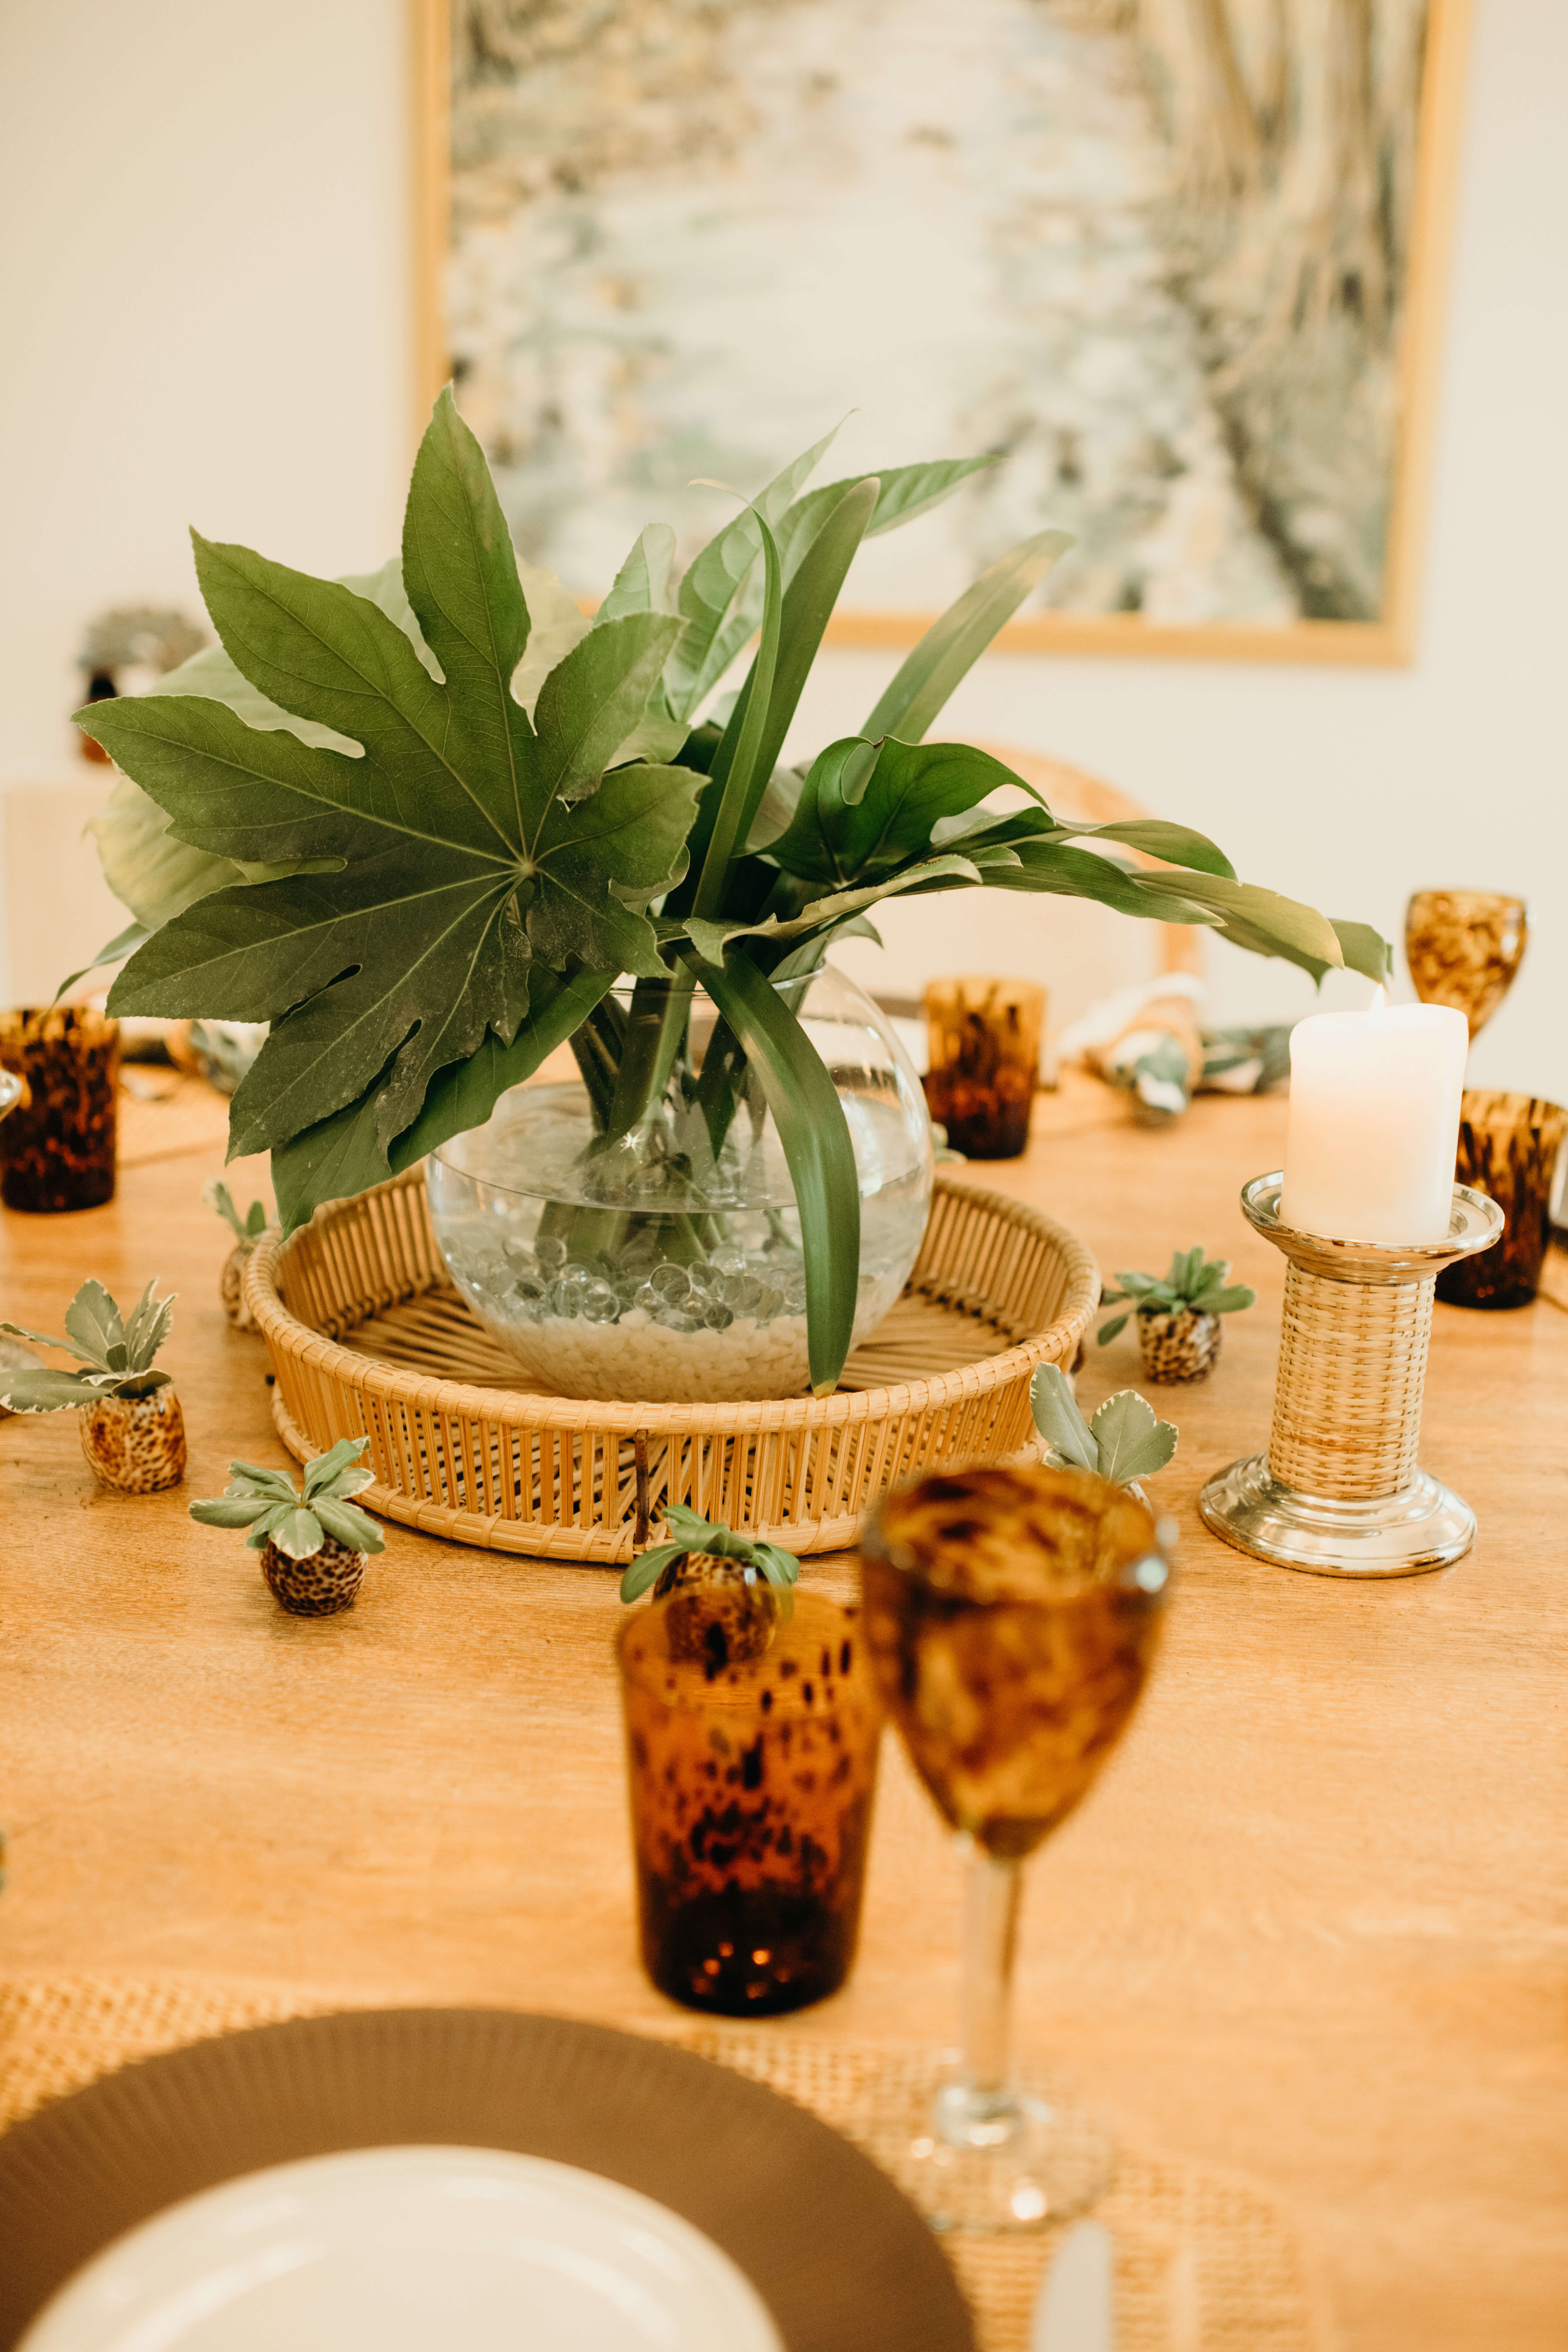 Louise's table setting vertical photo by Page Teahan